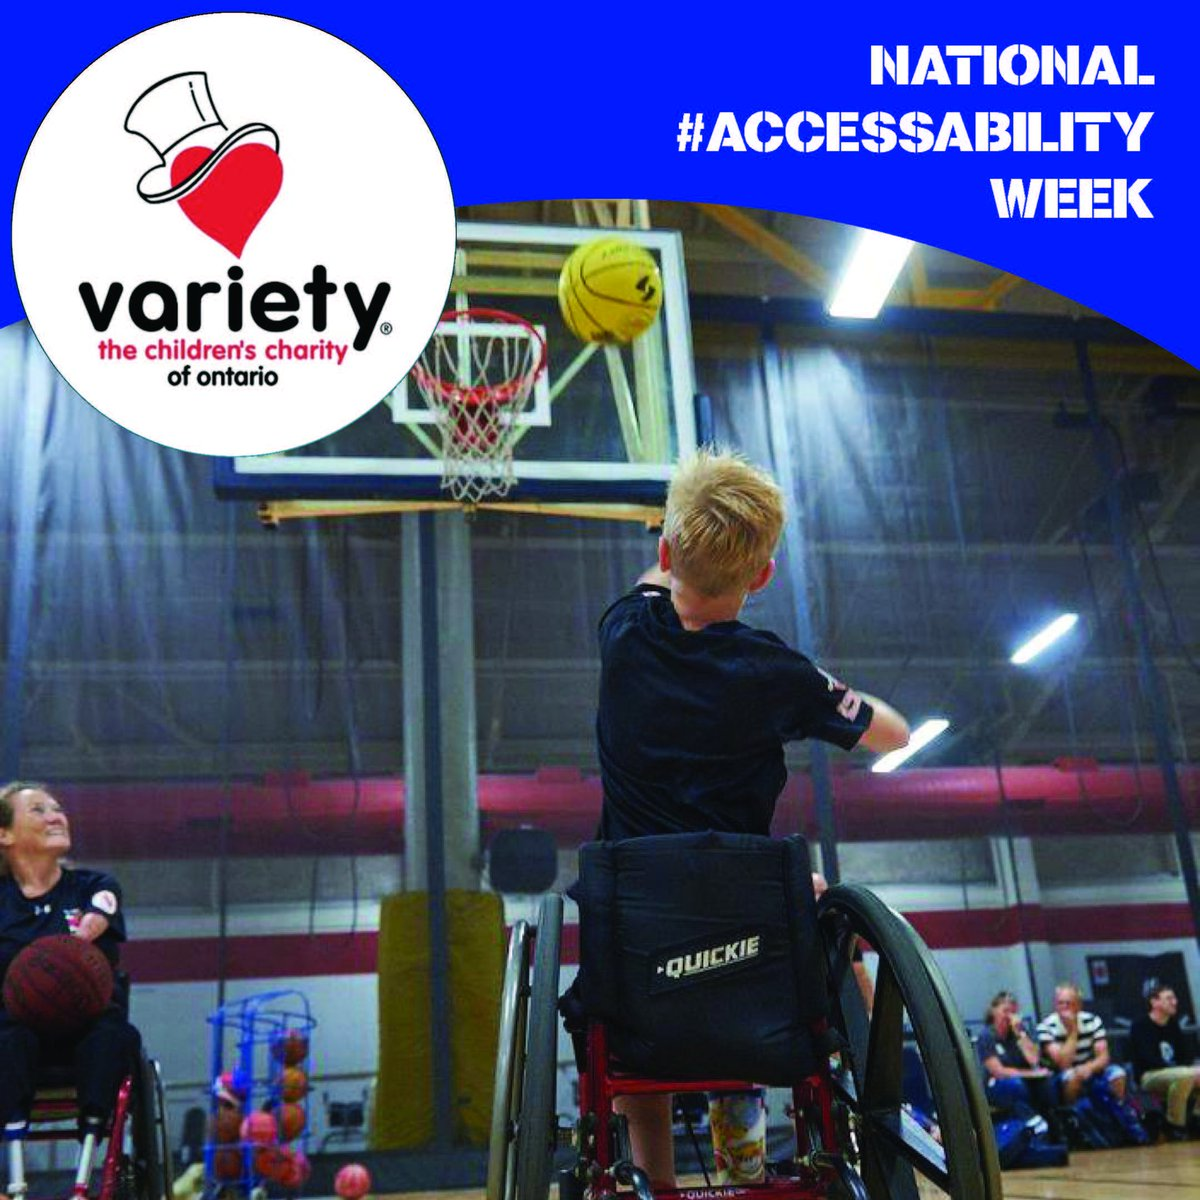 Our National #AccessAbility Week's daily spotlight is on @Variety_Ontario! This charitable organization is an #AllAbilityFacility that transforms lives through inclusive physical activity and education. StopGap is proud to support Variety Ontario in all their great work! <br>http://pic.twitter.com/ukmScBcis1